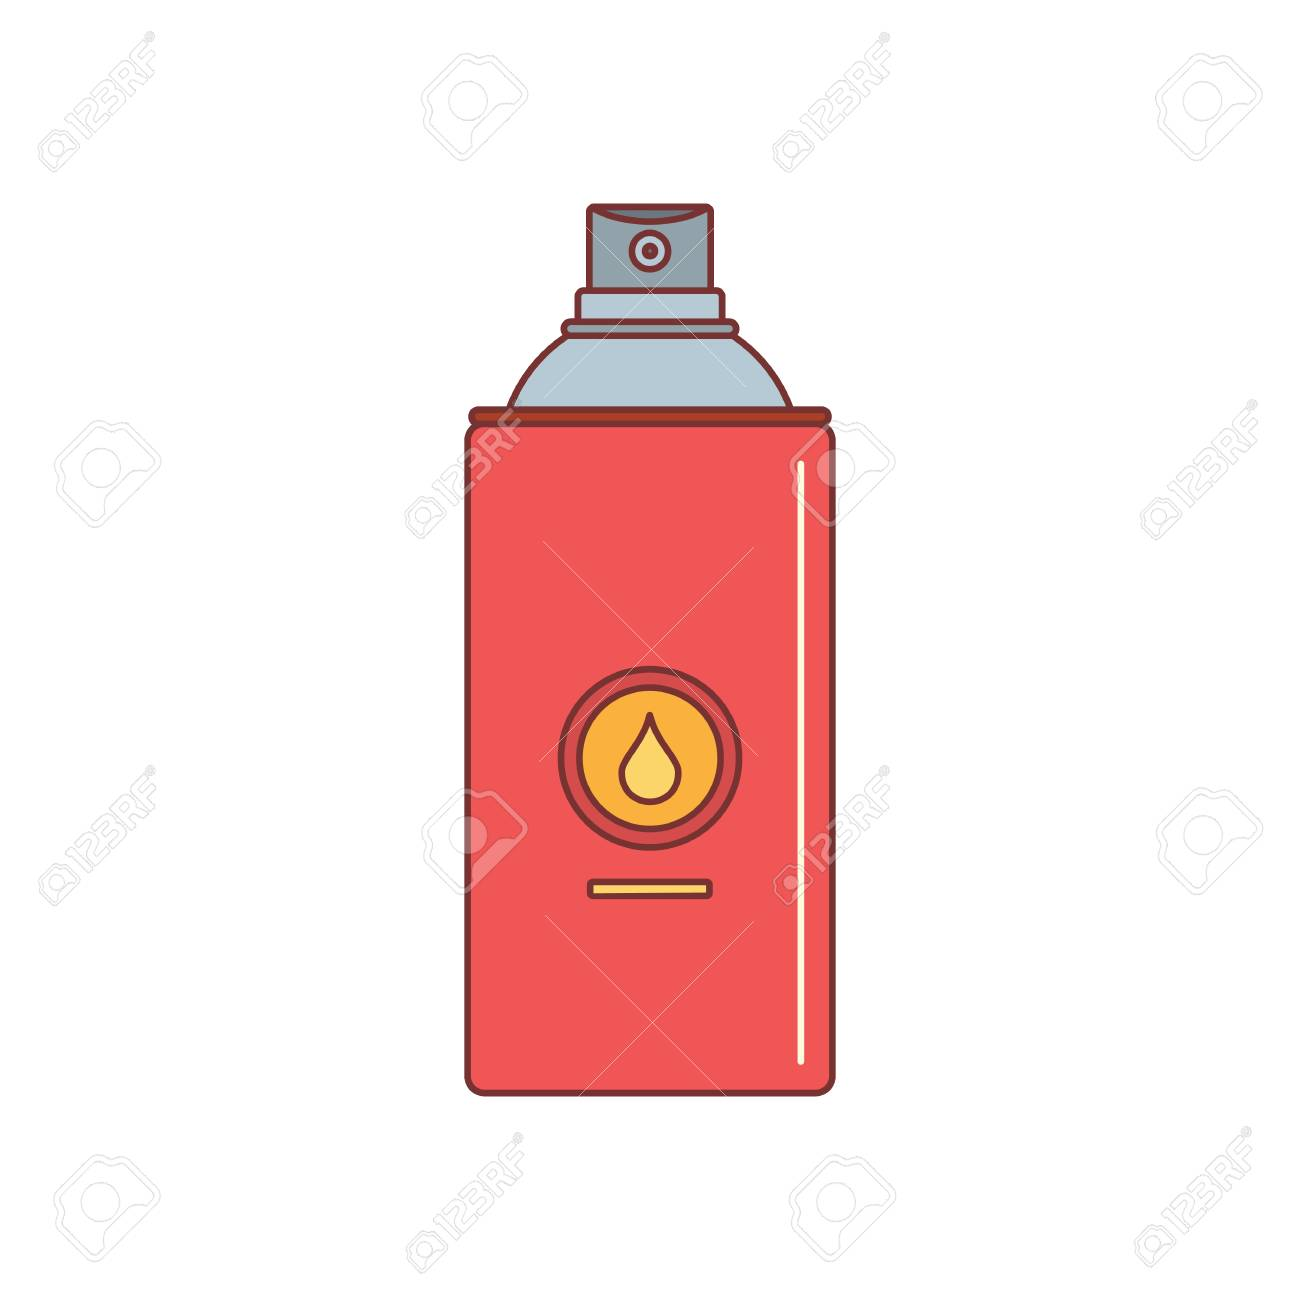 spray paint can icon cartoon illustration of spray paint can rh 123rf com spray can vector free spray paint can vector free